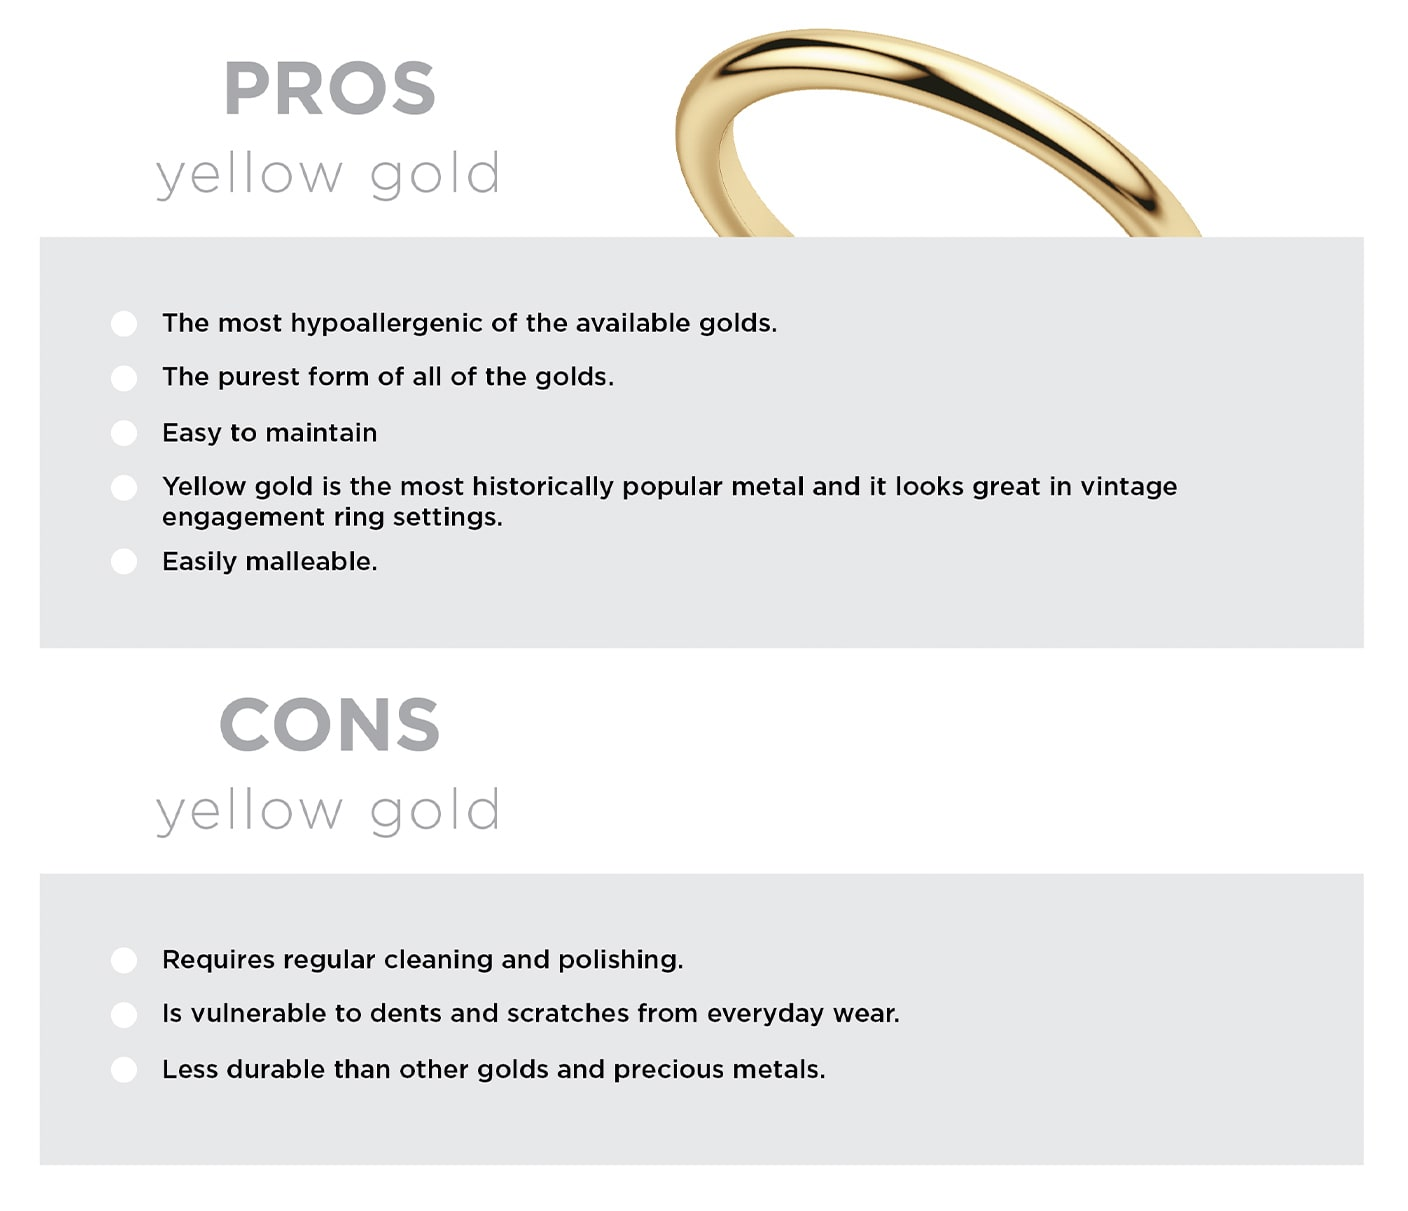 The pros and cons of yellow gold